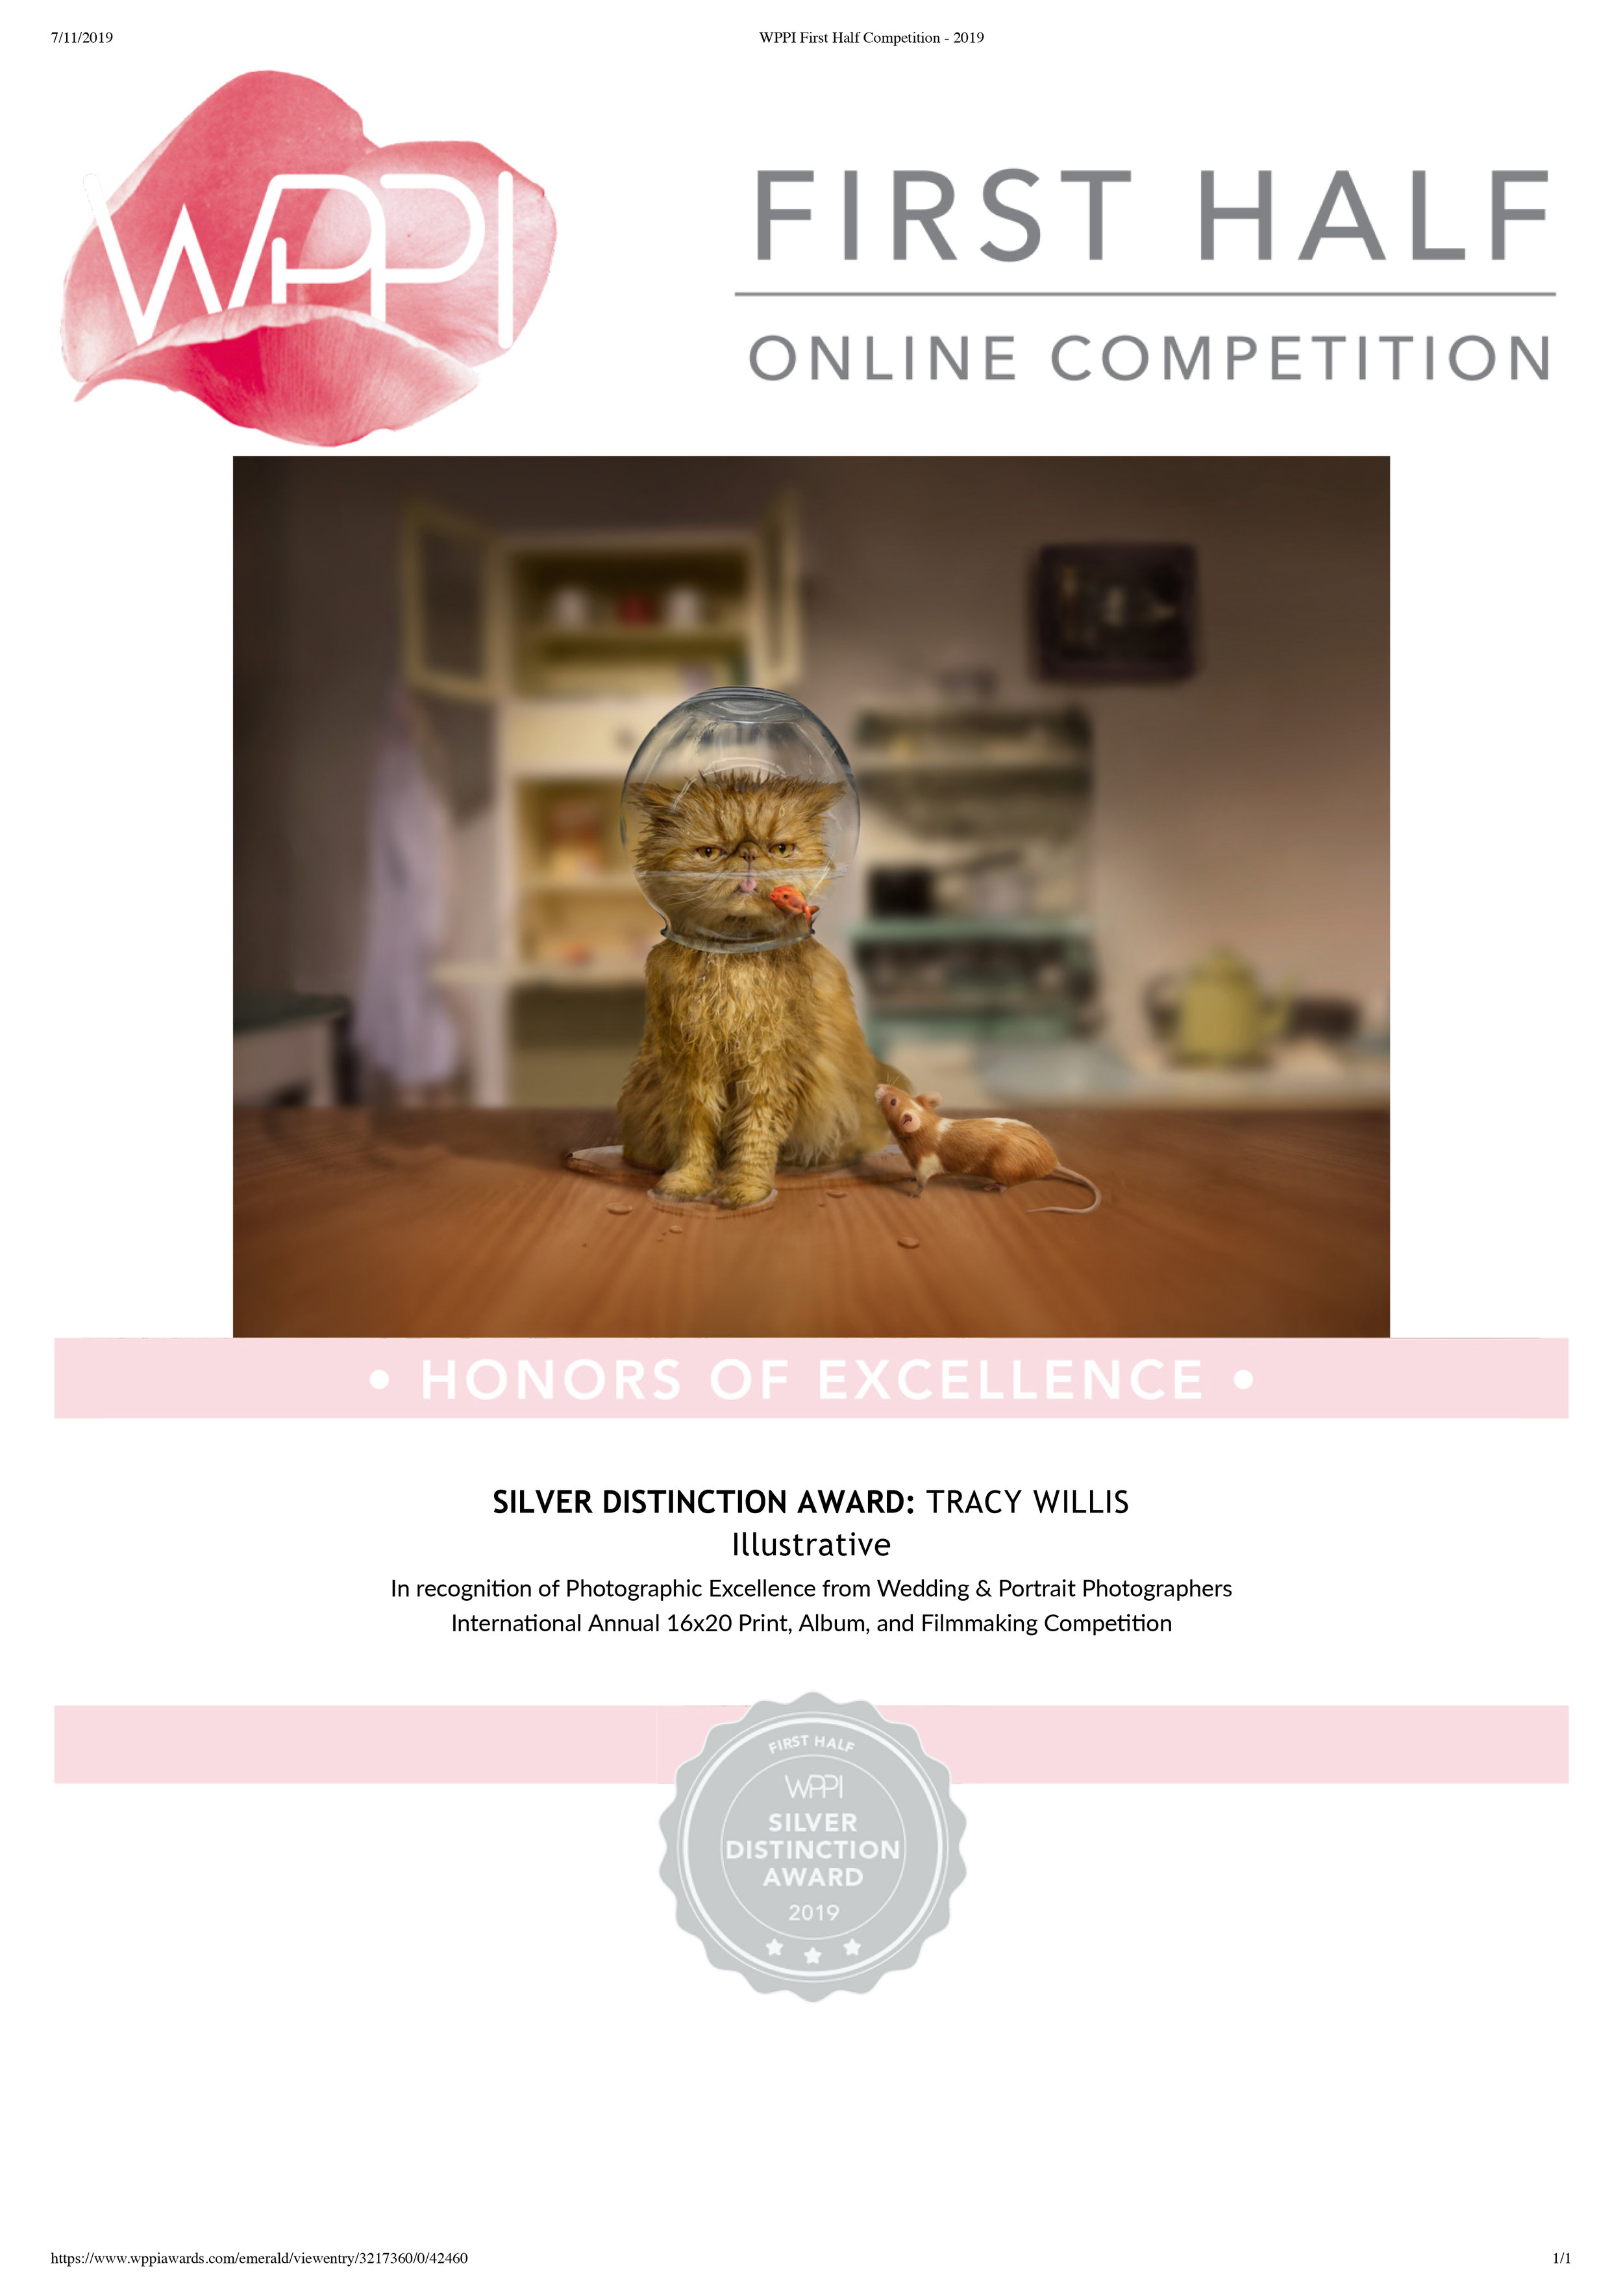 WPPI First Half Competition2 - 2019.jpg